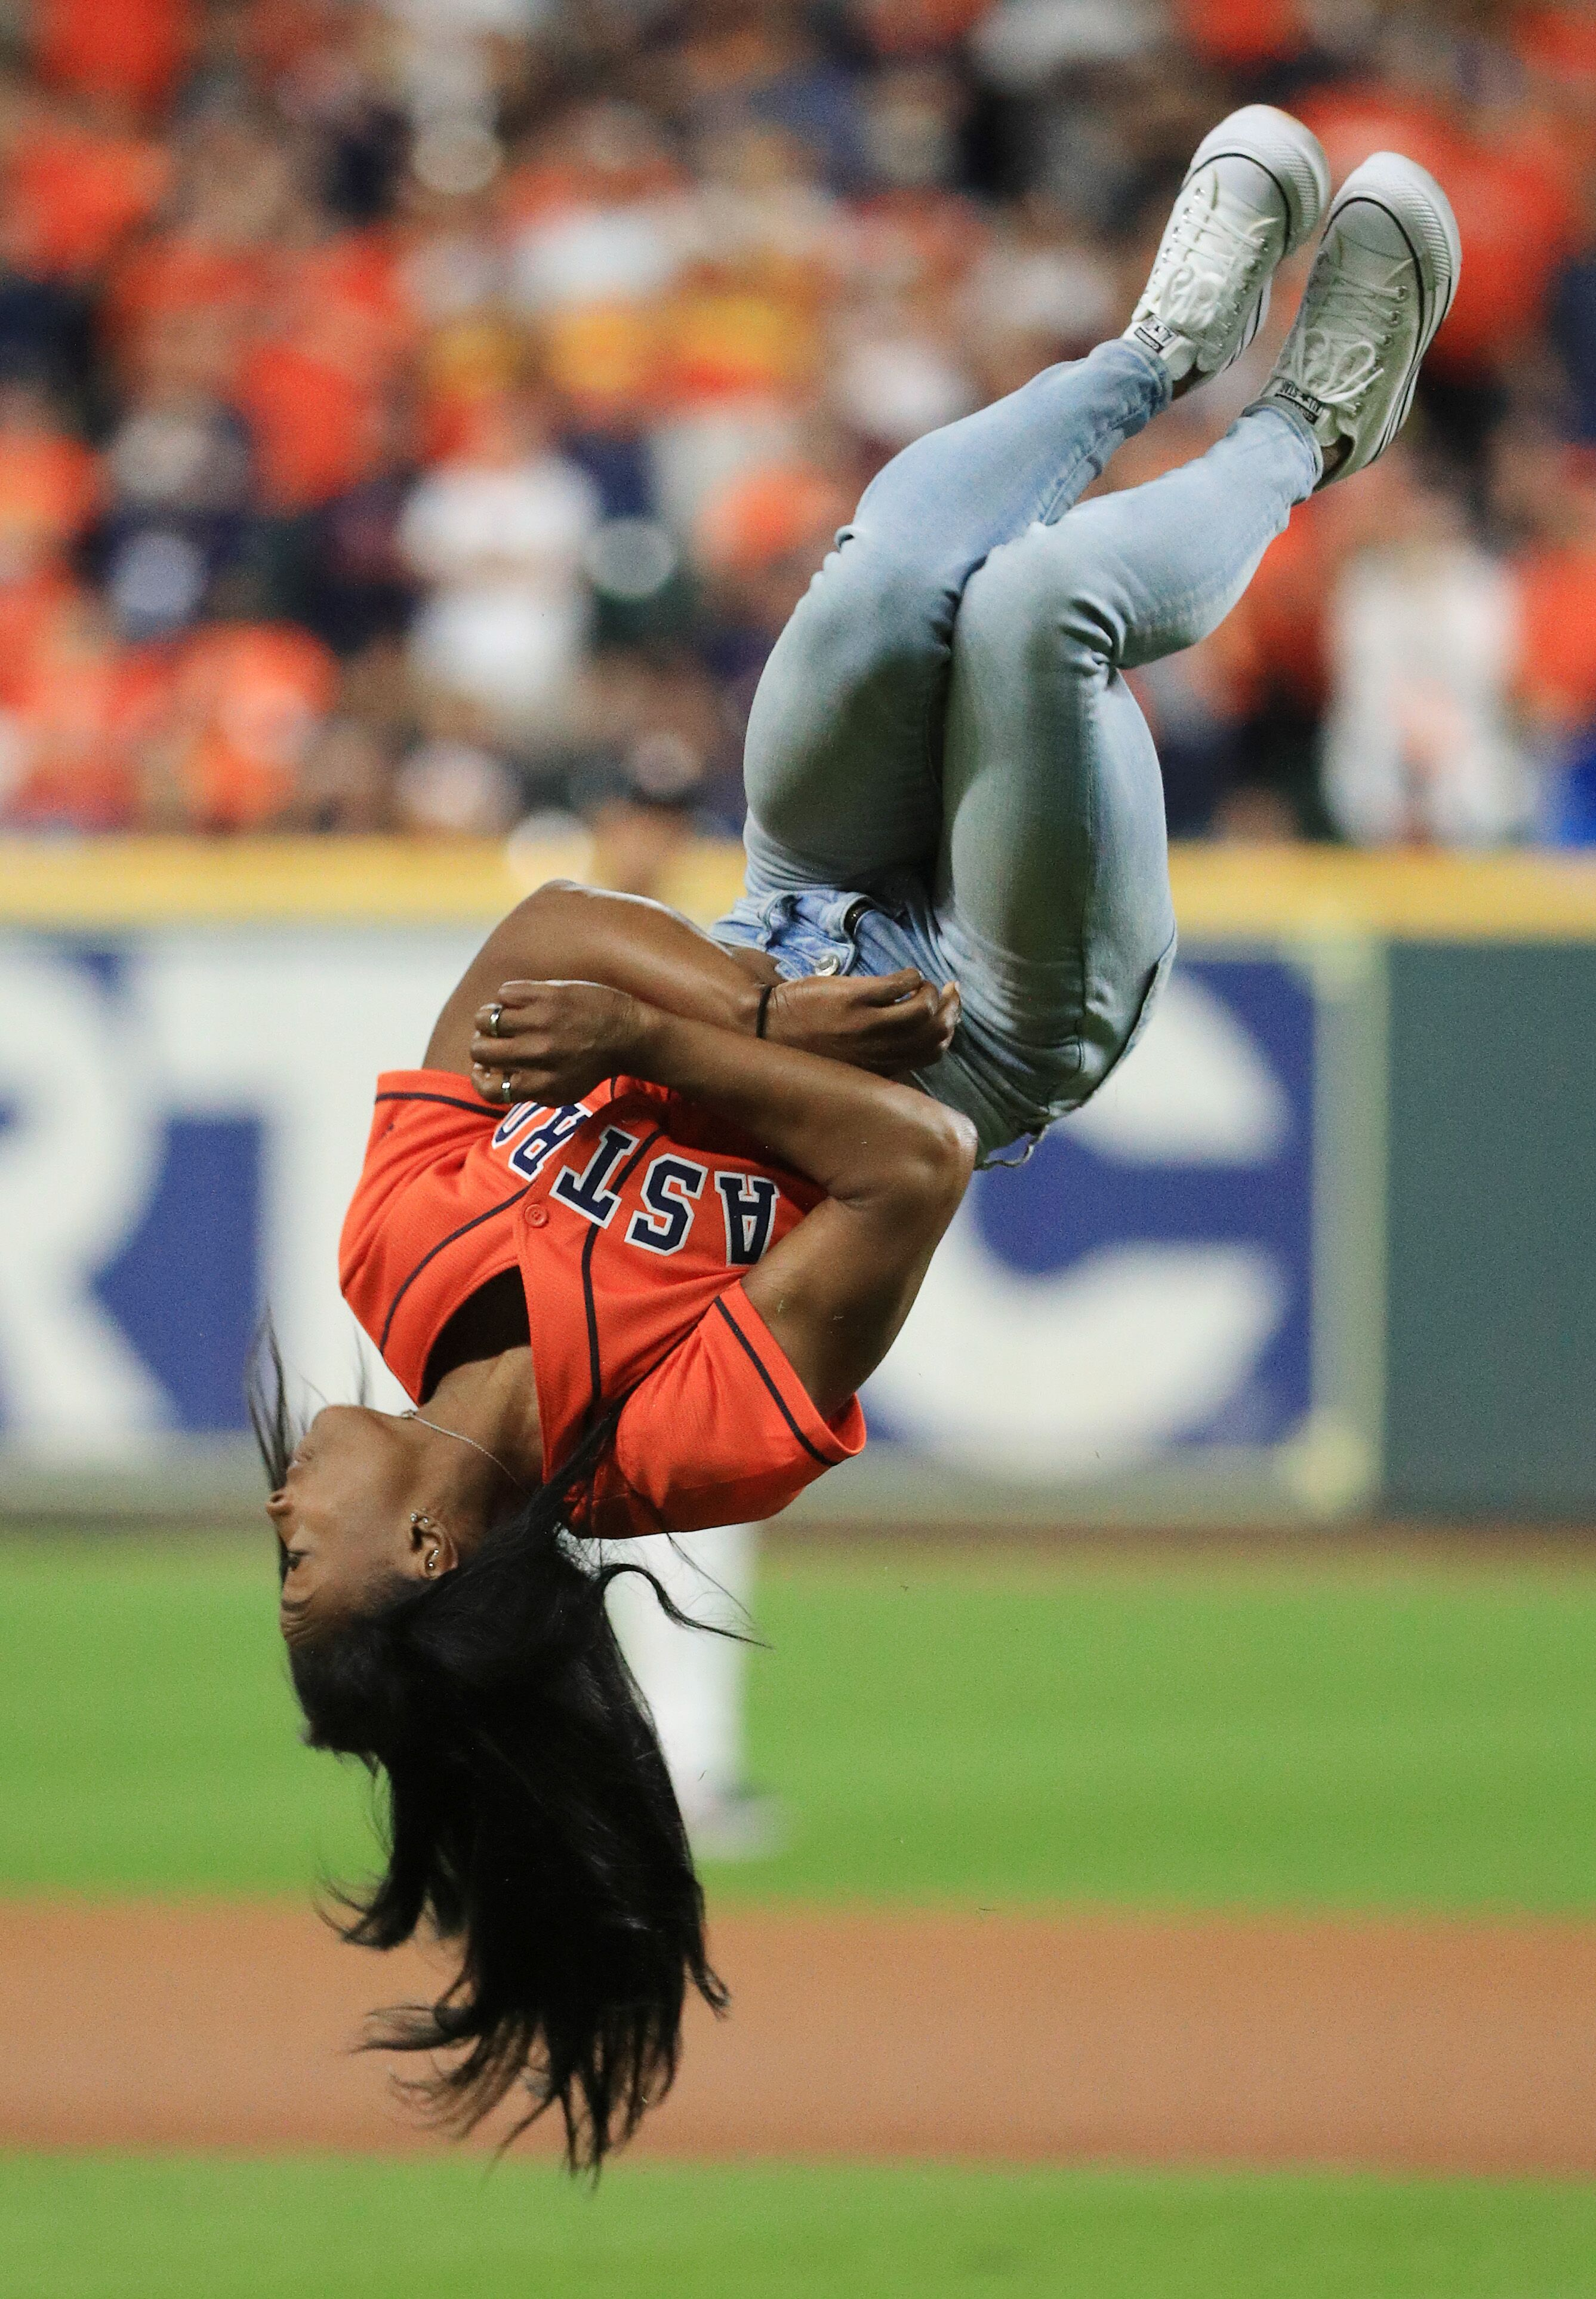 Simone Biles at a World Series game between the Houston Astros and the Washington Nationals on Oct. 23, 2019 in Texas | Source: Getty Images